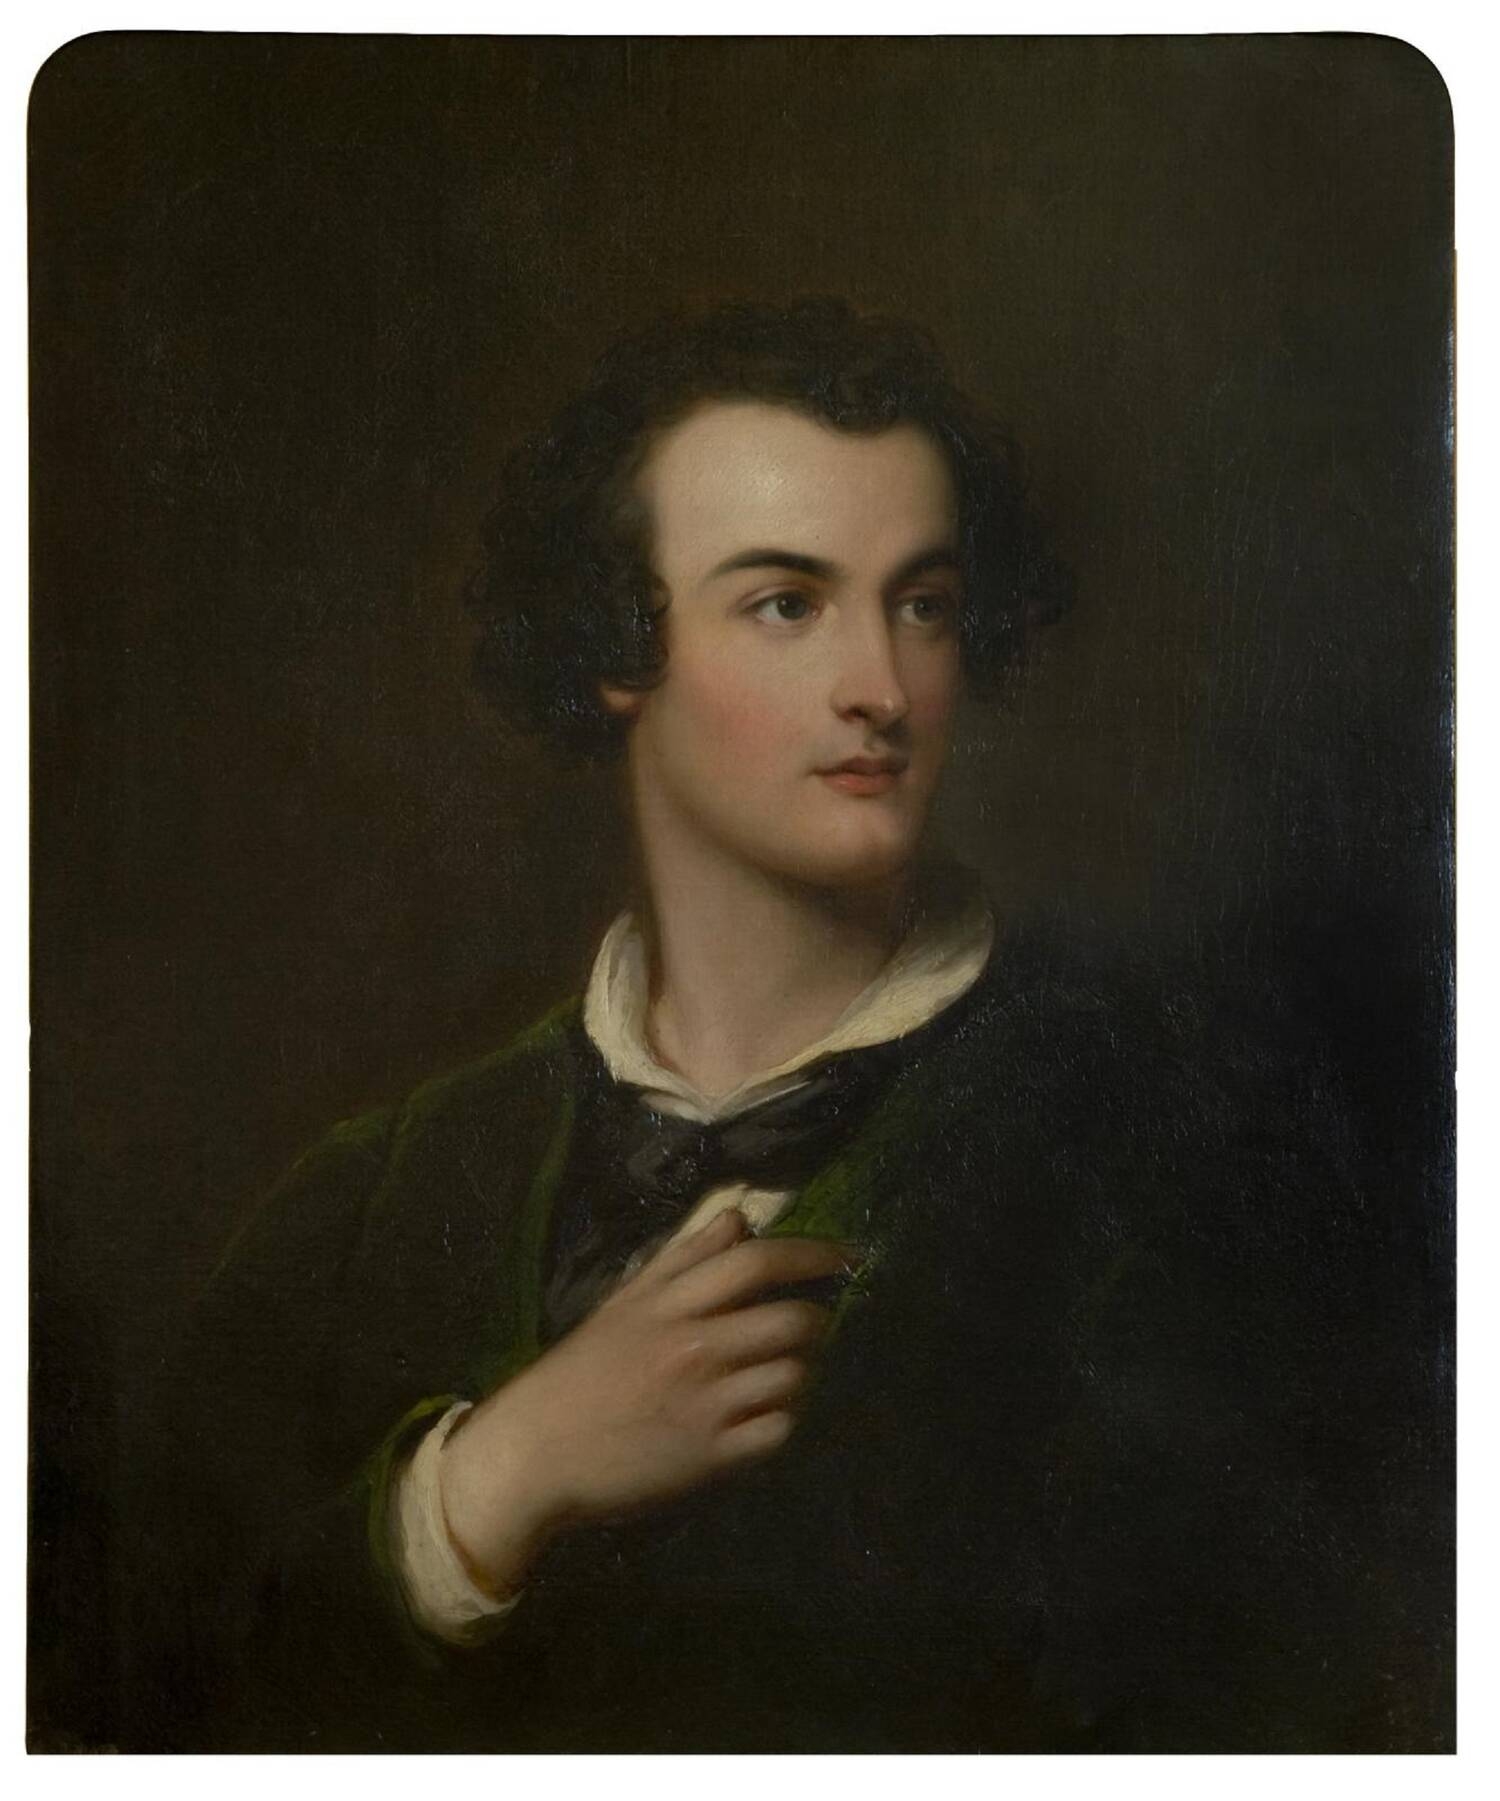 A half portrait of a young Georgian man, wearing a green velvet jacket. He holds one hand to his heart, and is looking off to the side, in a somewhat romantic pose. He has dark curly hair that falls to his ears.